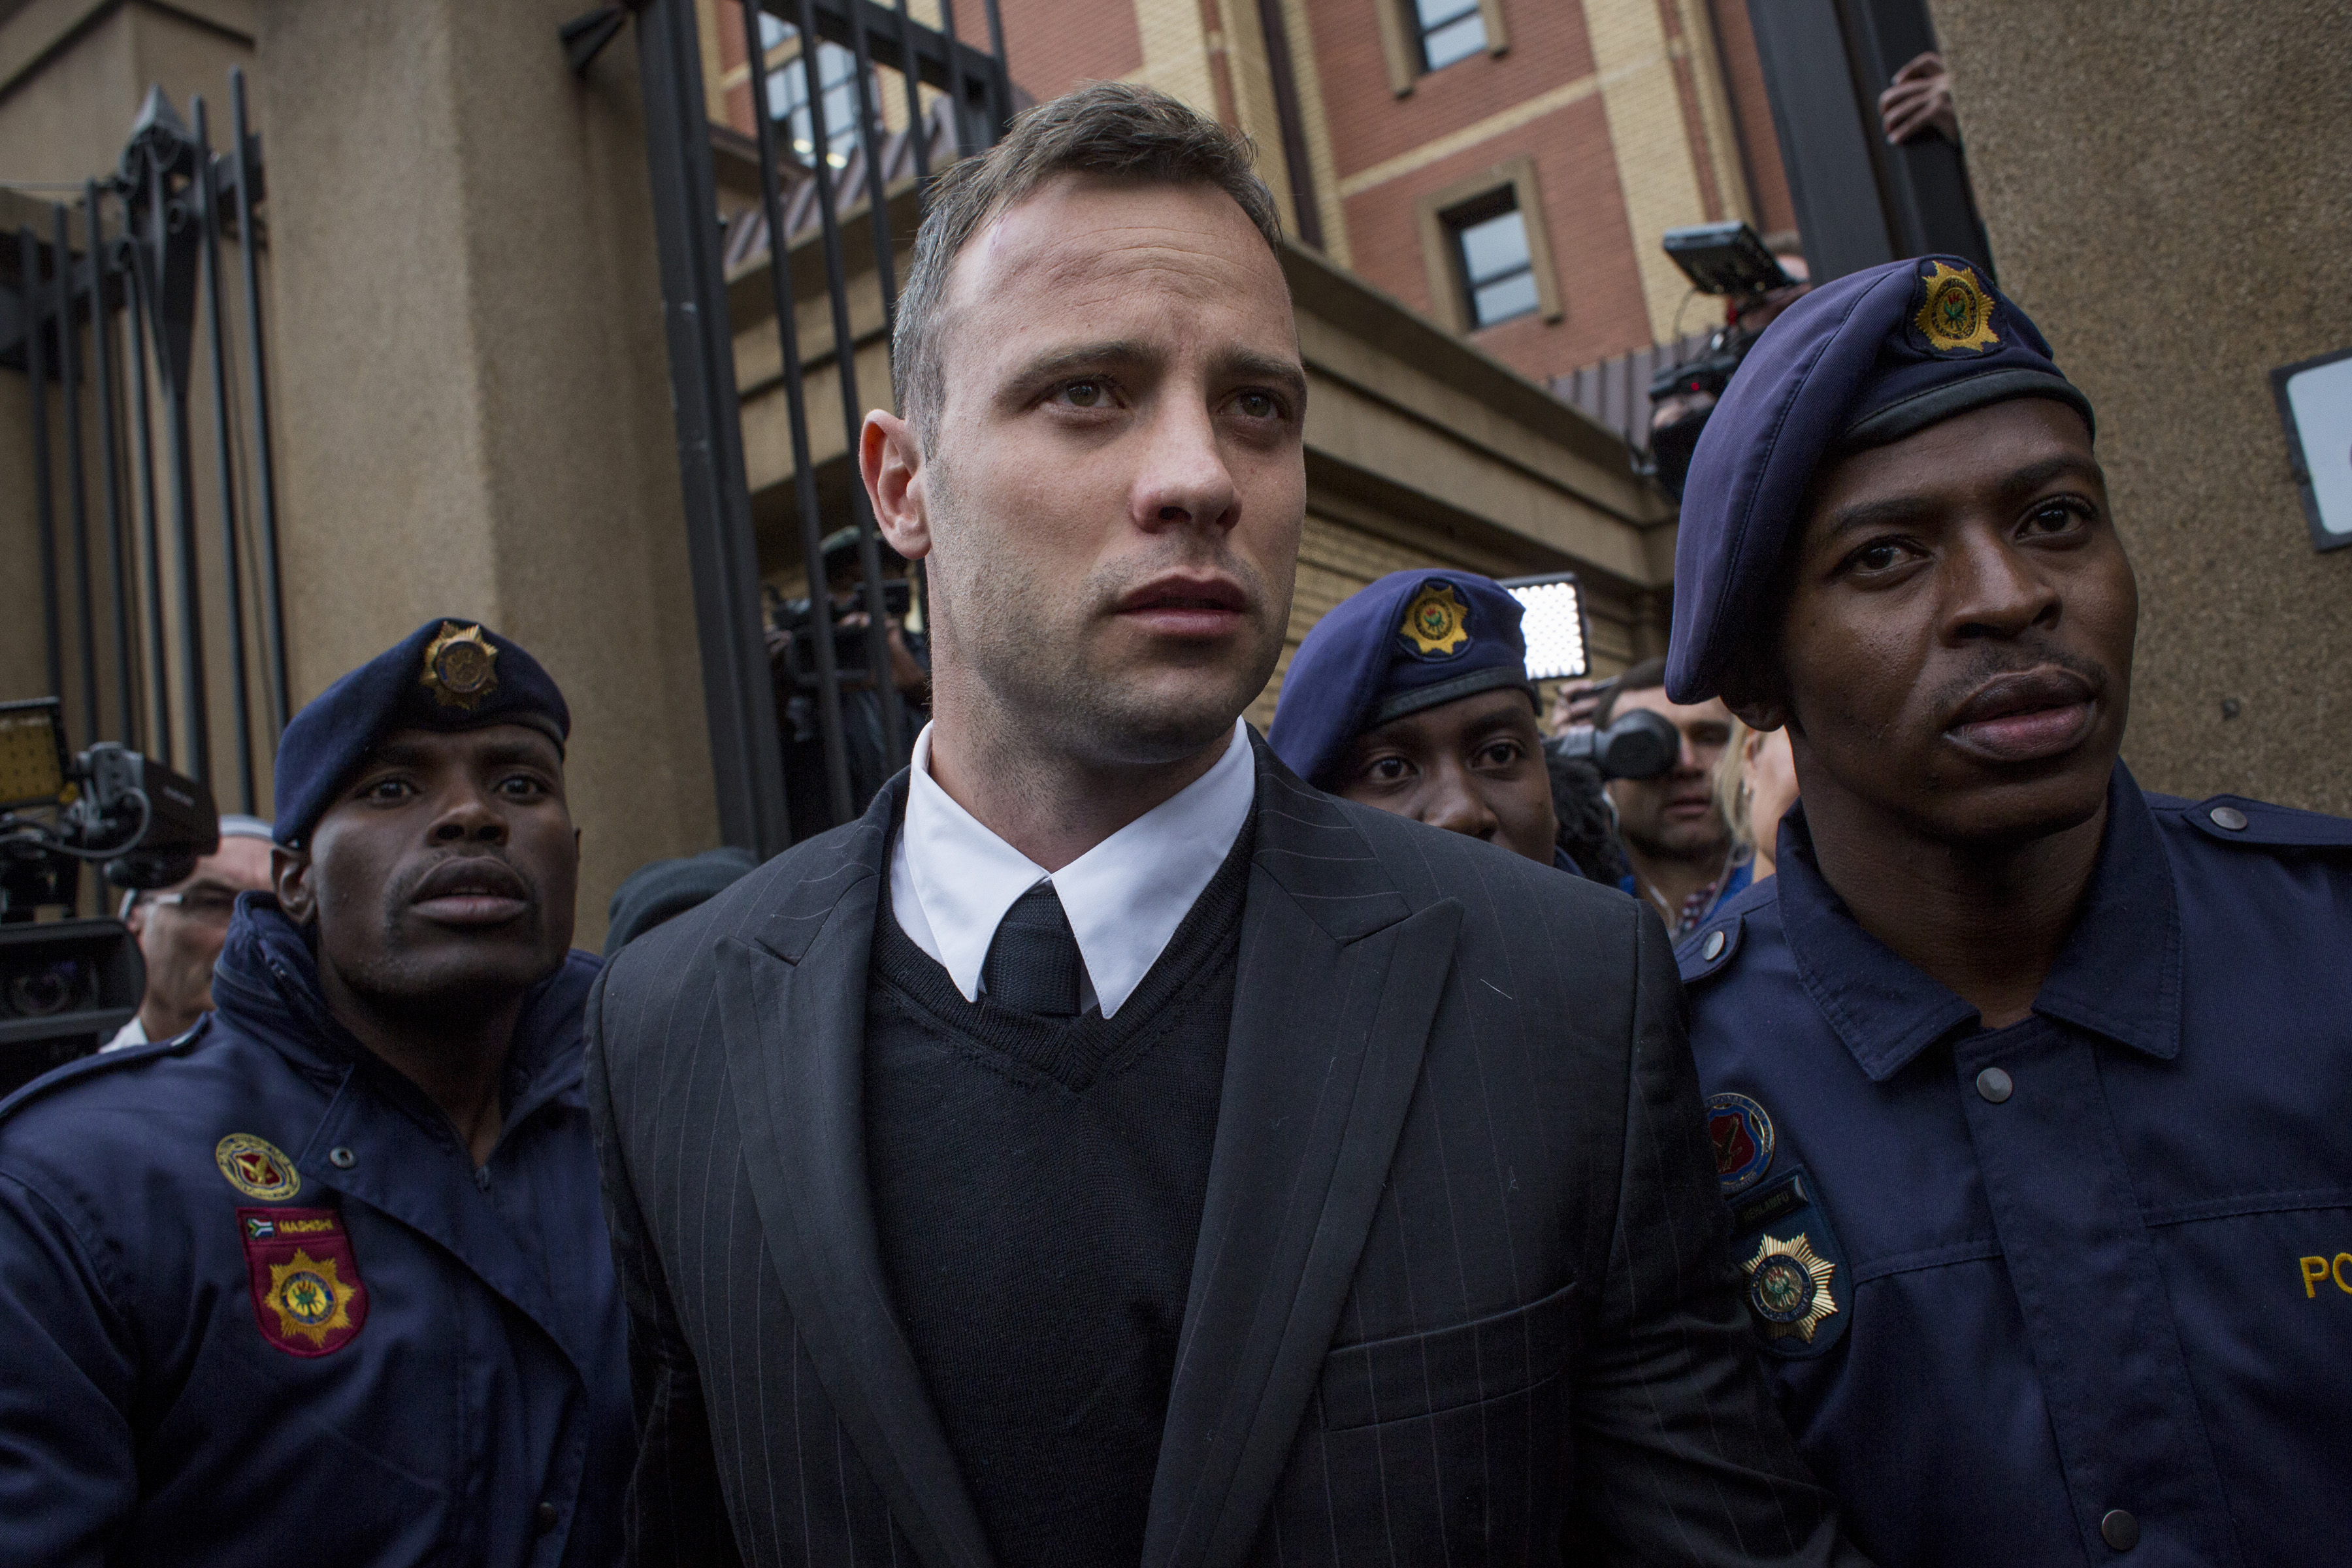 Oscar Pistorius Has Received Some Very Dark Threats Ahead Of Murder Sentence GettyImages 540065128